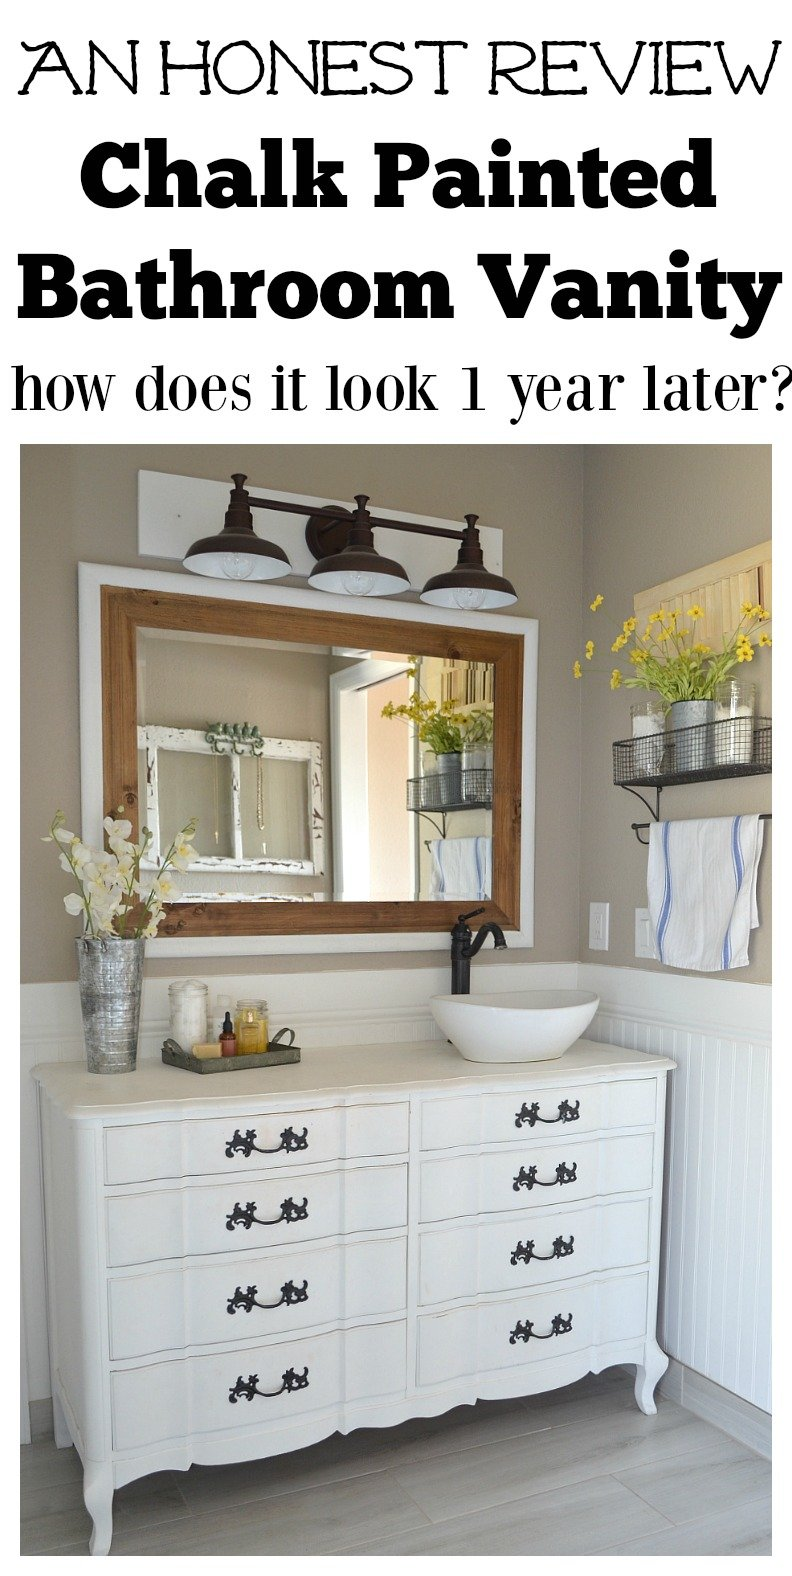 An honest review of chalk painted bathroom vanities. Full review after 1 year of use. Everything you need to know before using chalk paint.